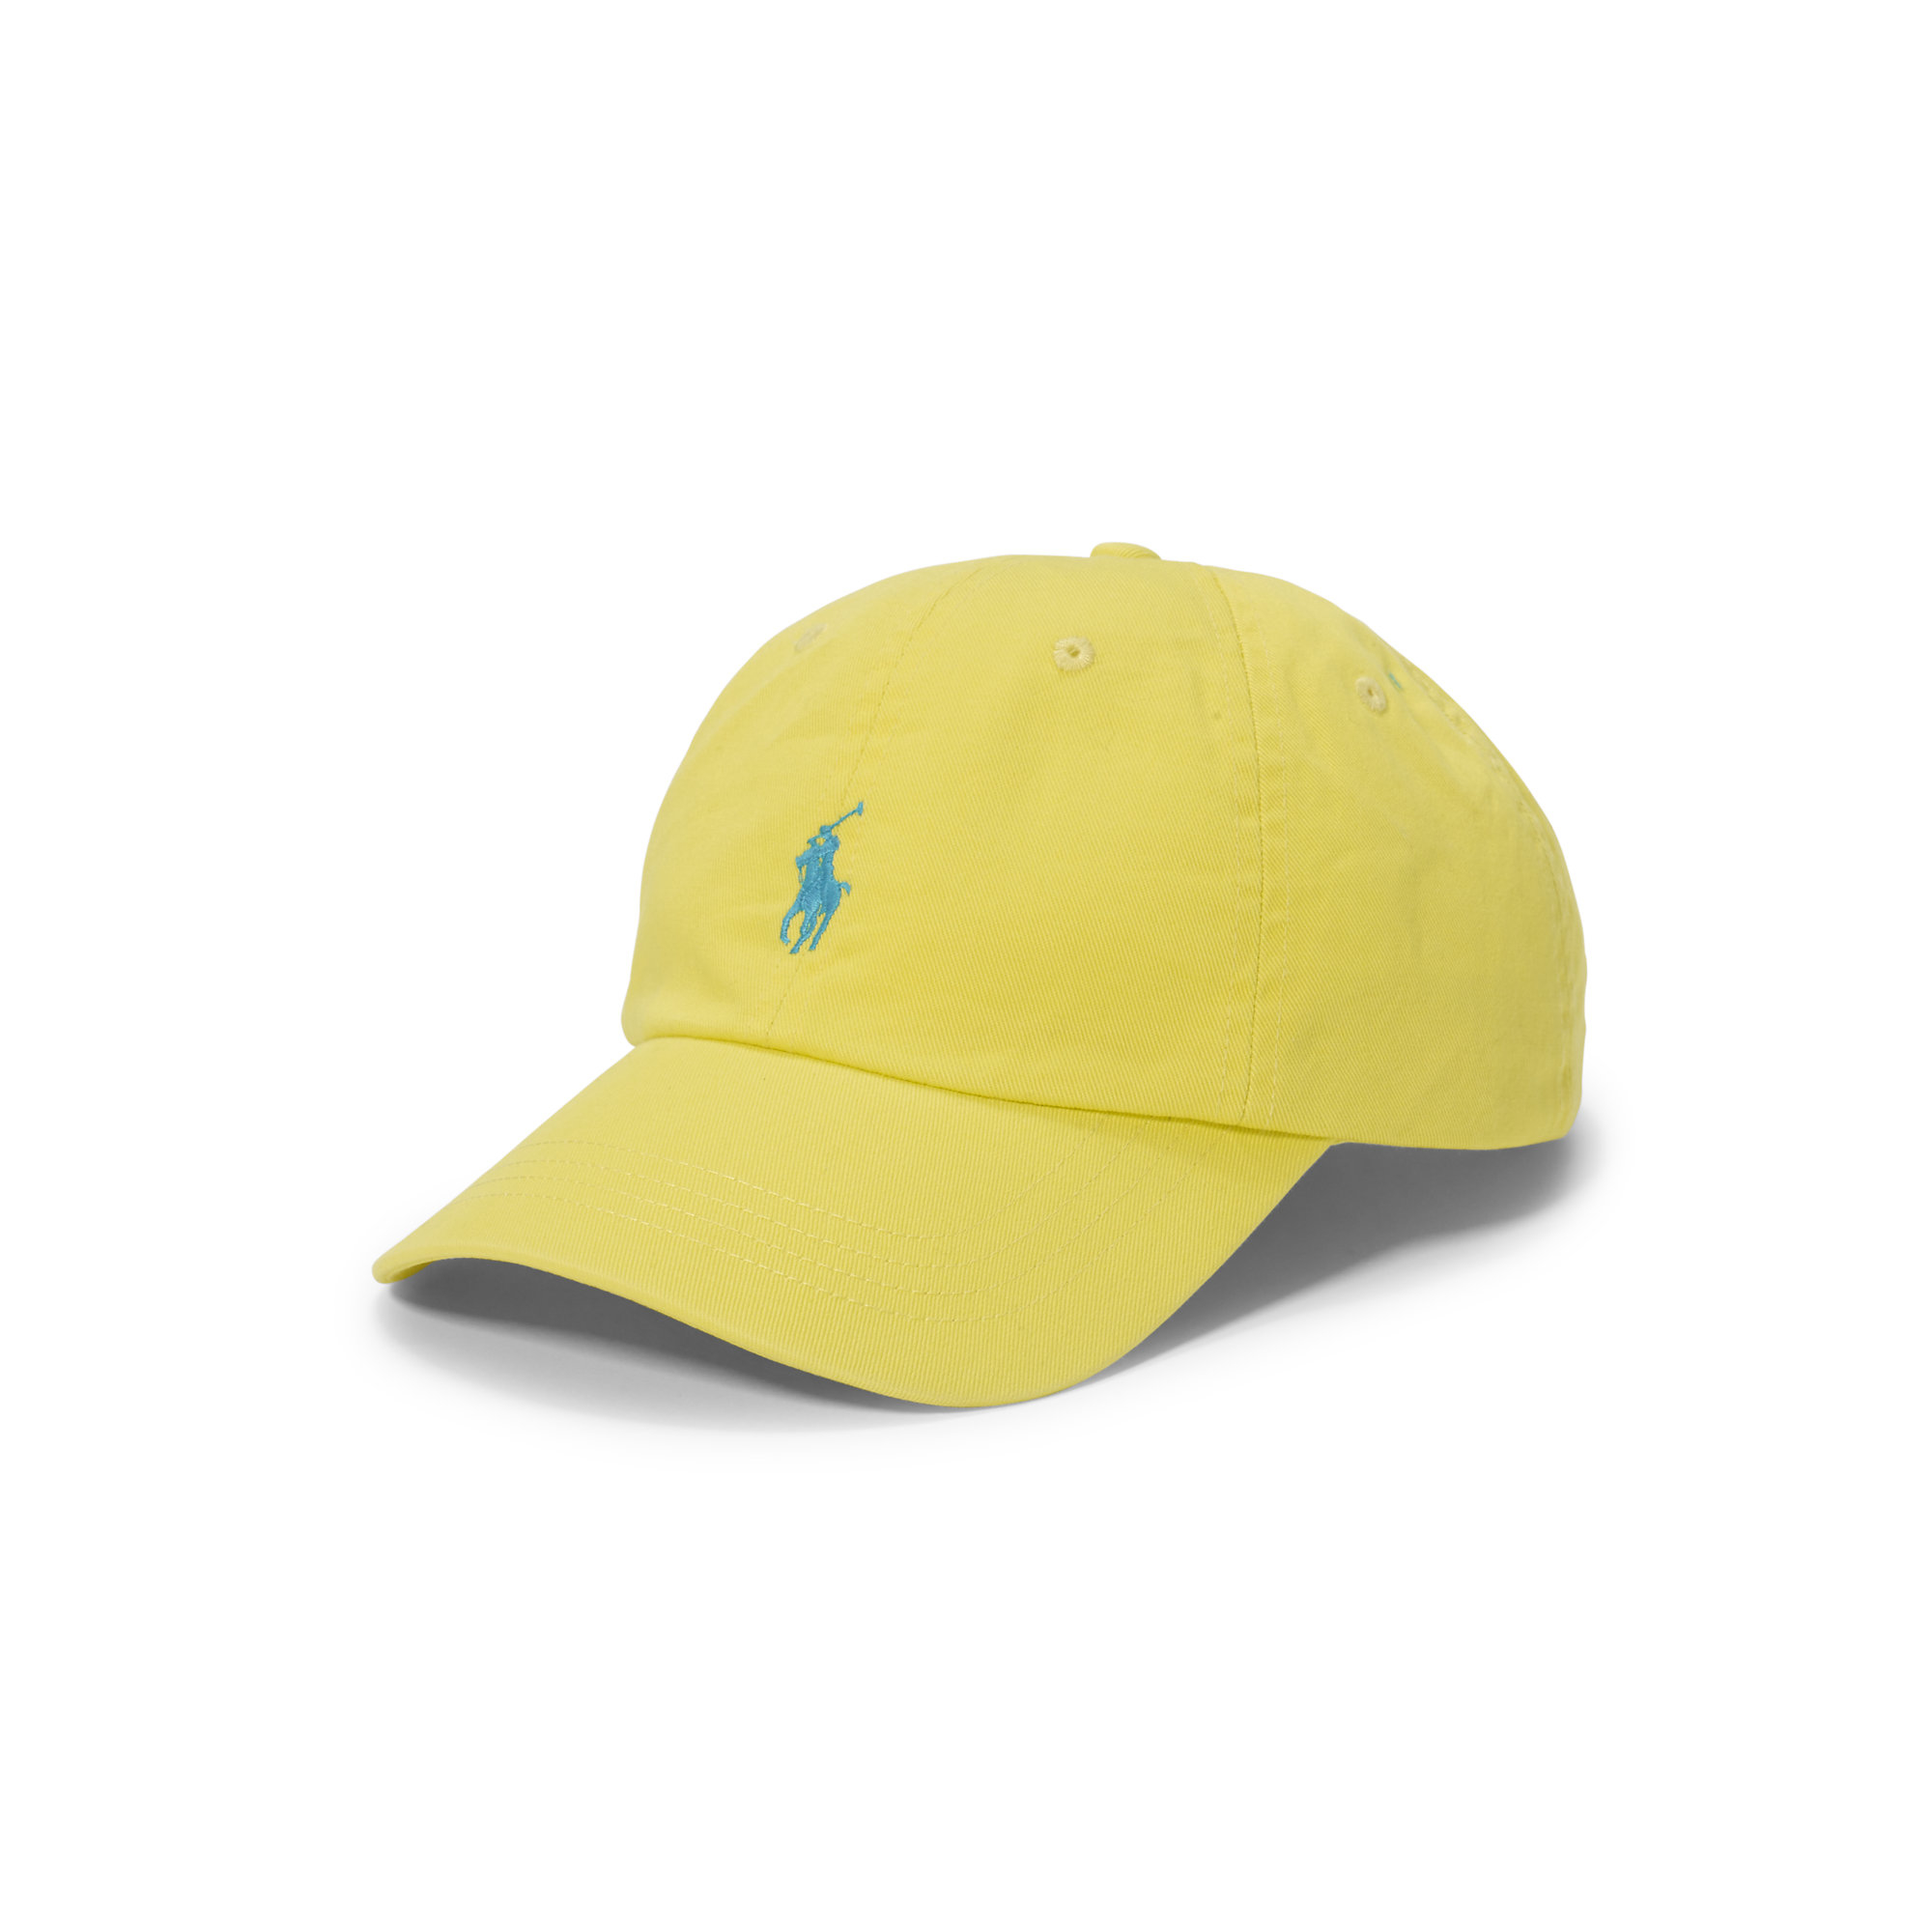 Lyst - Polo Ralph Lauren Cotton Chino Baseball Cap in Yellow for Men 97a5869e045